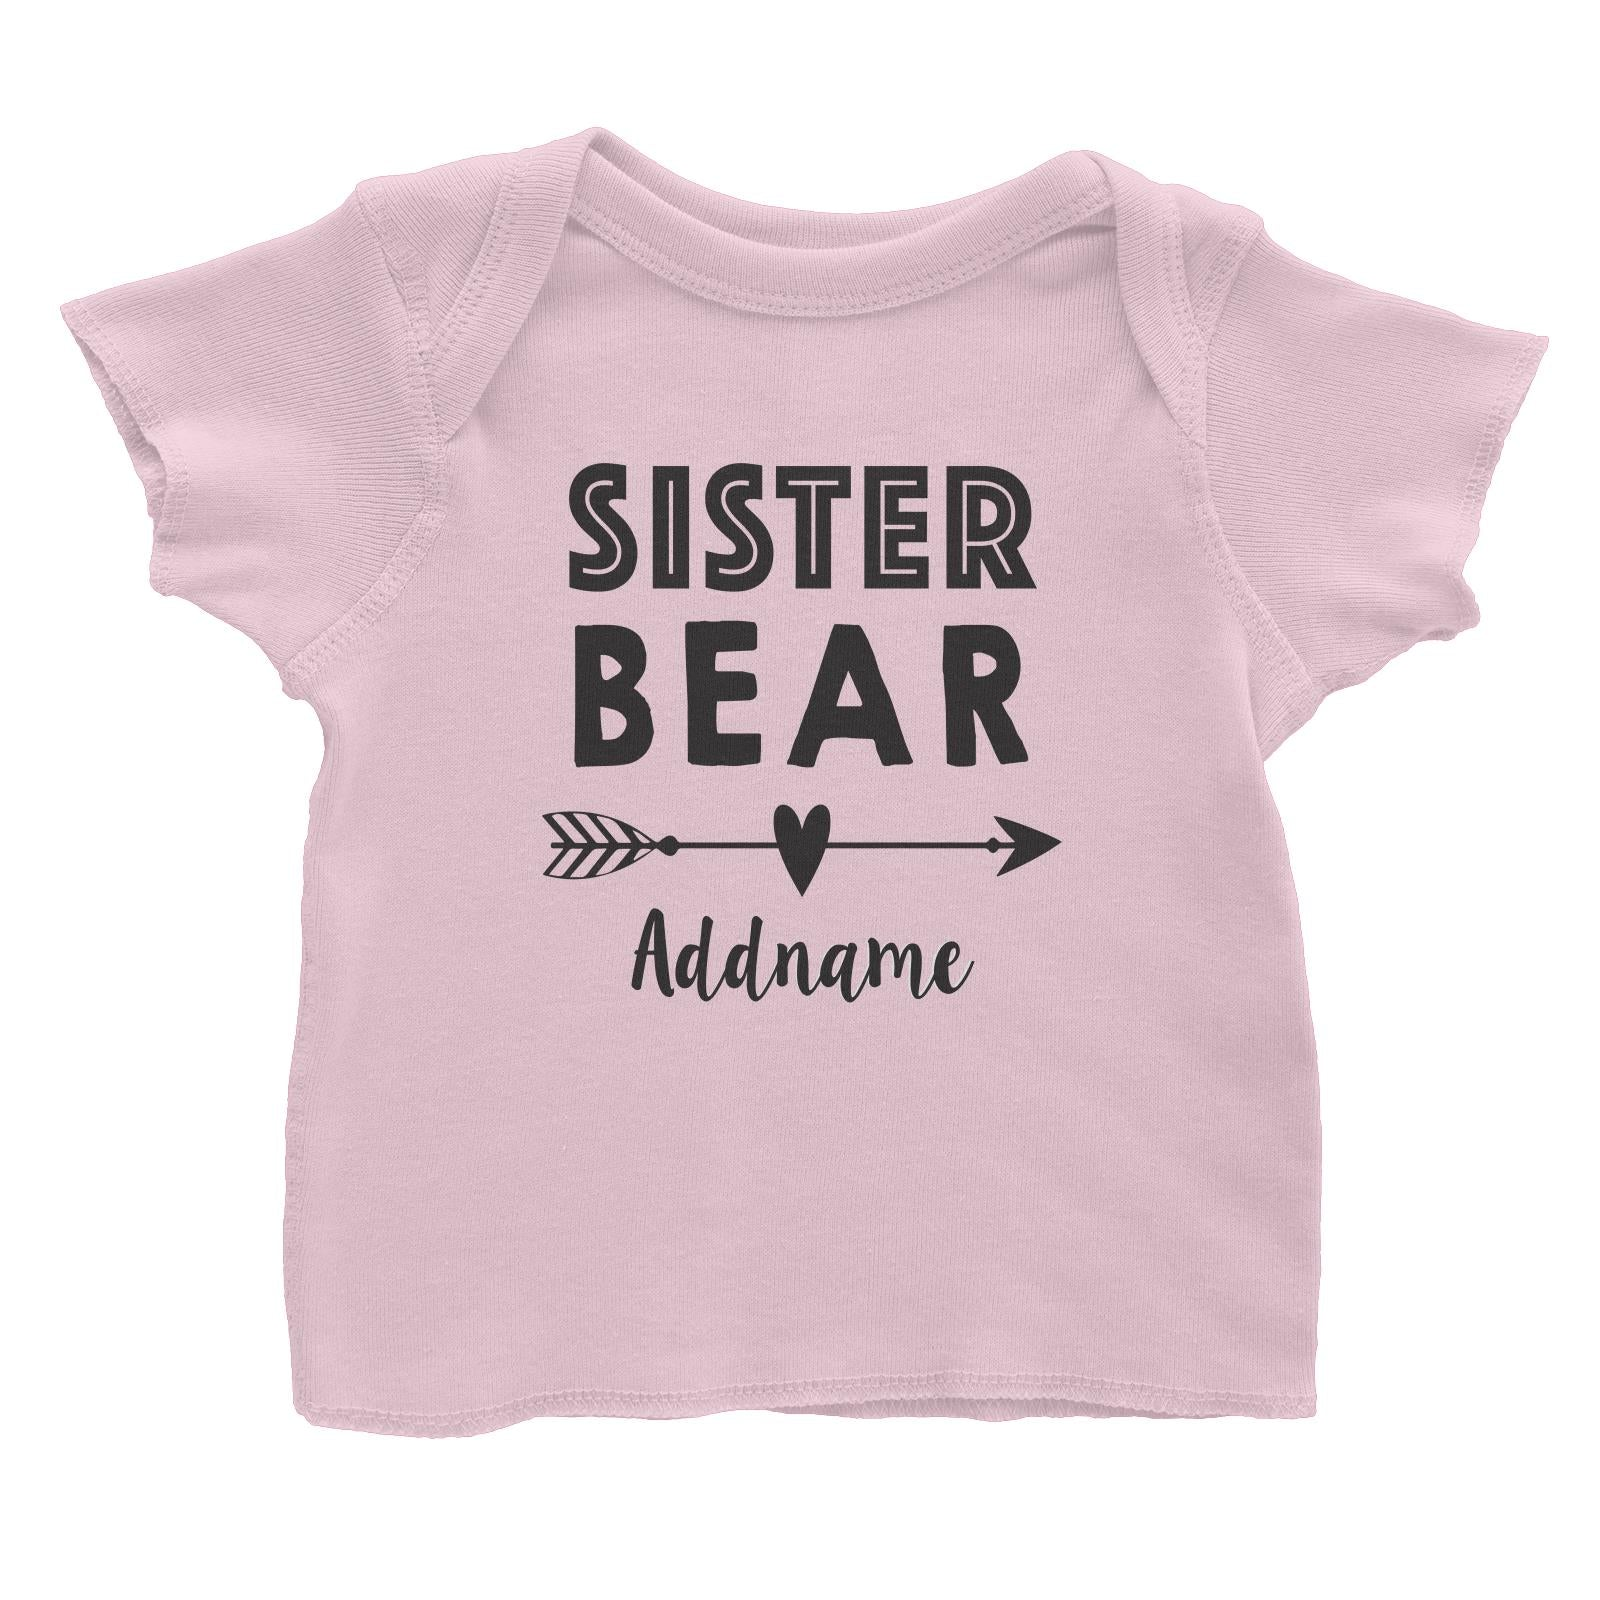 Sister Bear Addname Baby T-Shirt  Matching Family Personalizable Designs